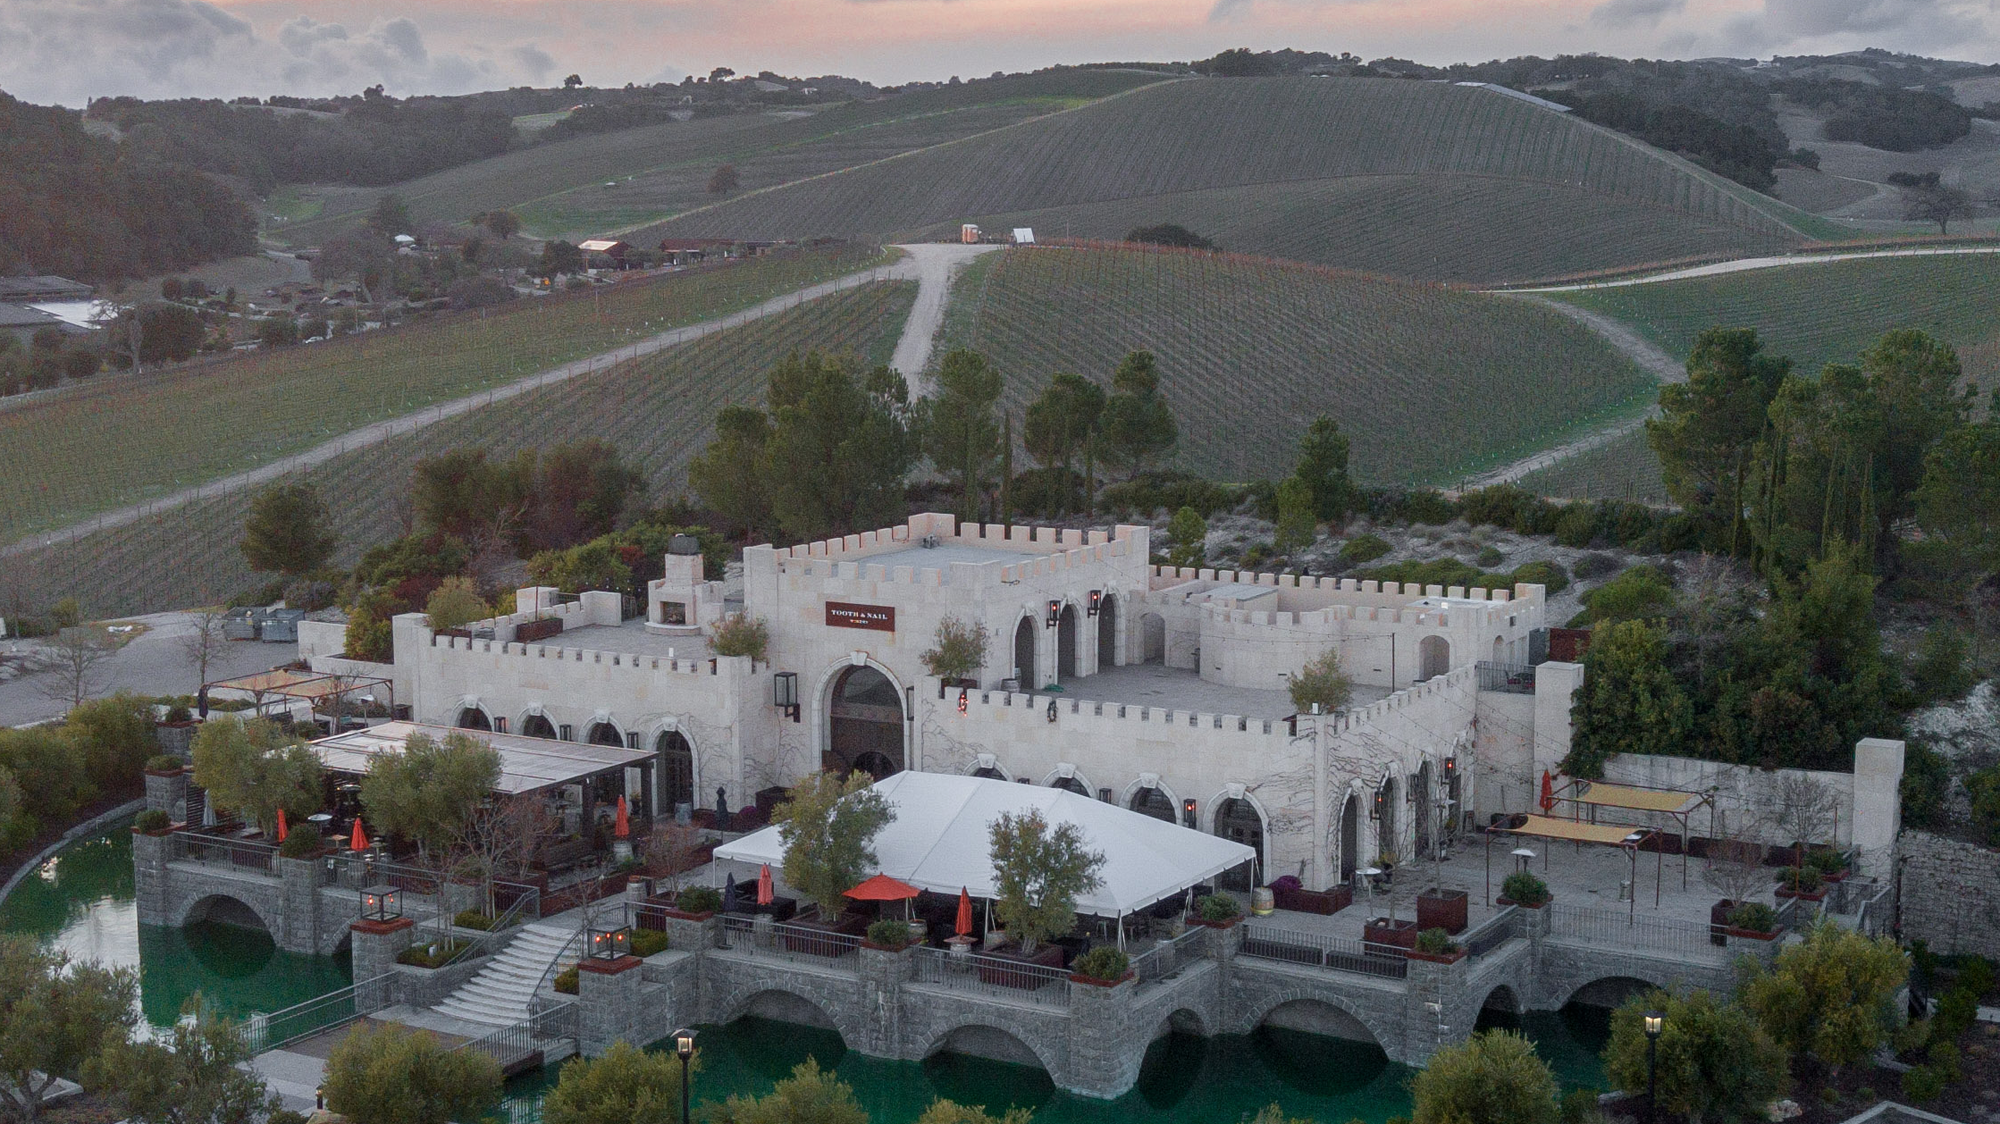 TOOTH & NAIL: THE PASO ROBLES CASTLE WINERY